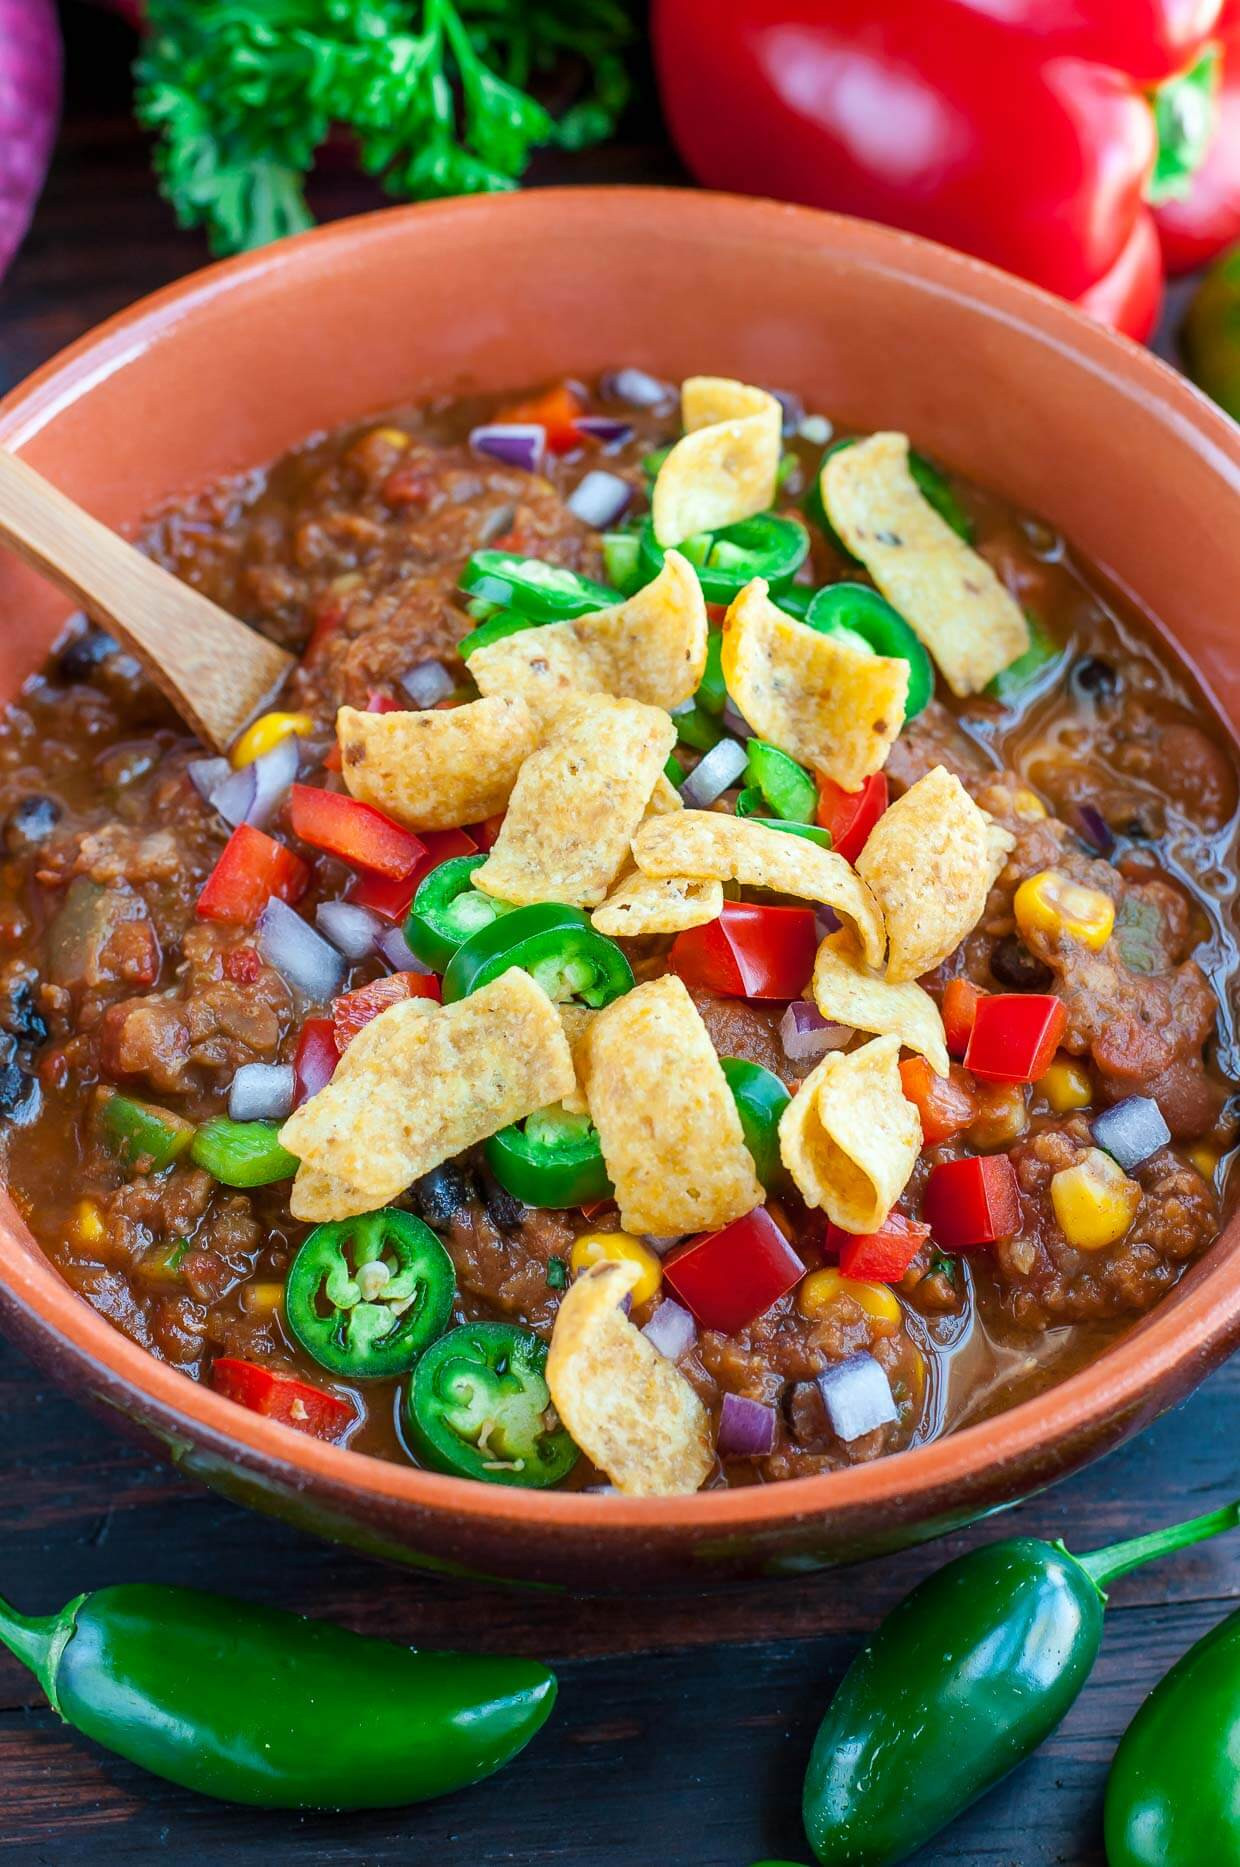 Healthy Mexican Food Recipes  The Best 40 Vegan Mexican Recipes for a Healthy Easy